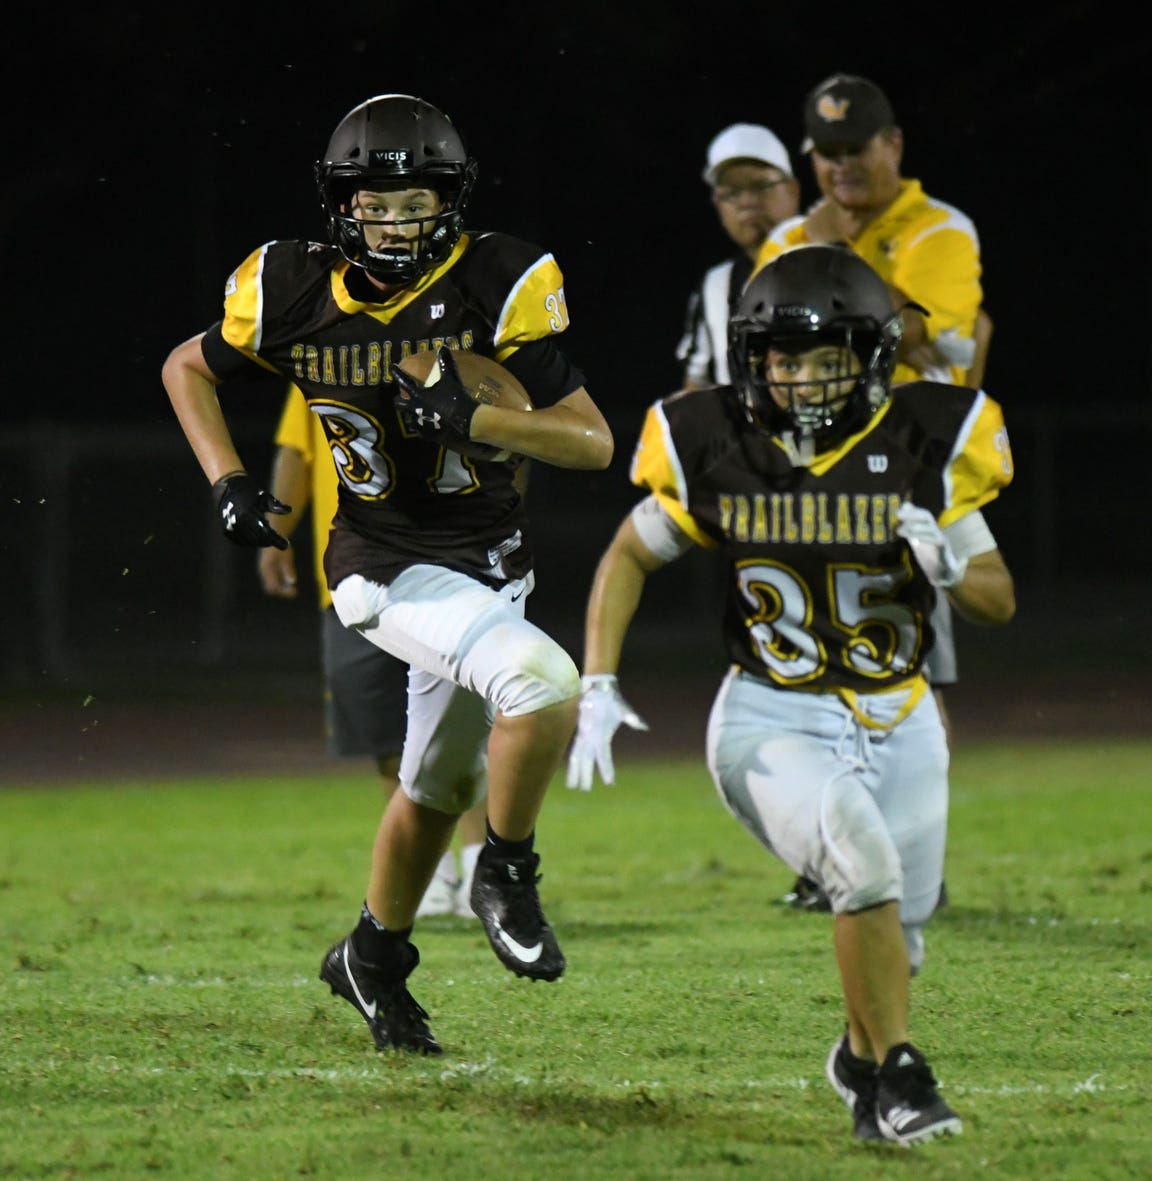 Golden West's Angel Celaya, right, runs upfield in a scrimmage against Selma on Aug. 15, 2019 at Visalia Community Stadium.